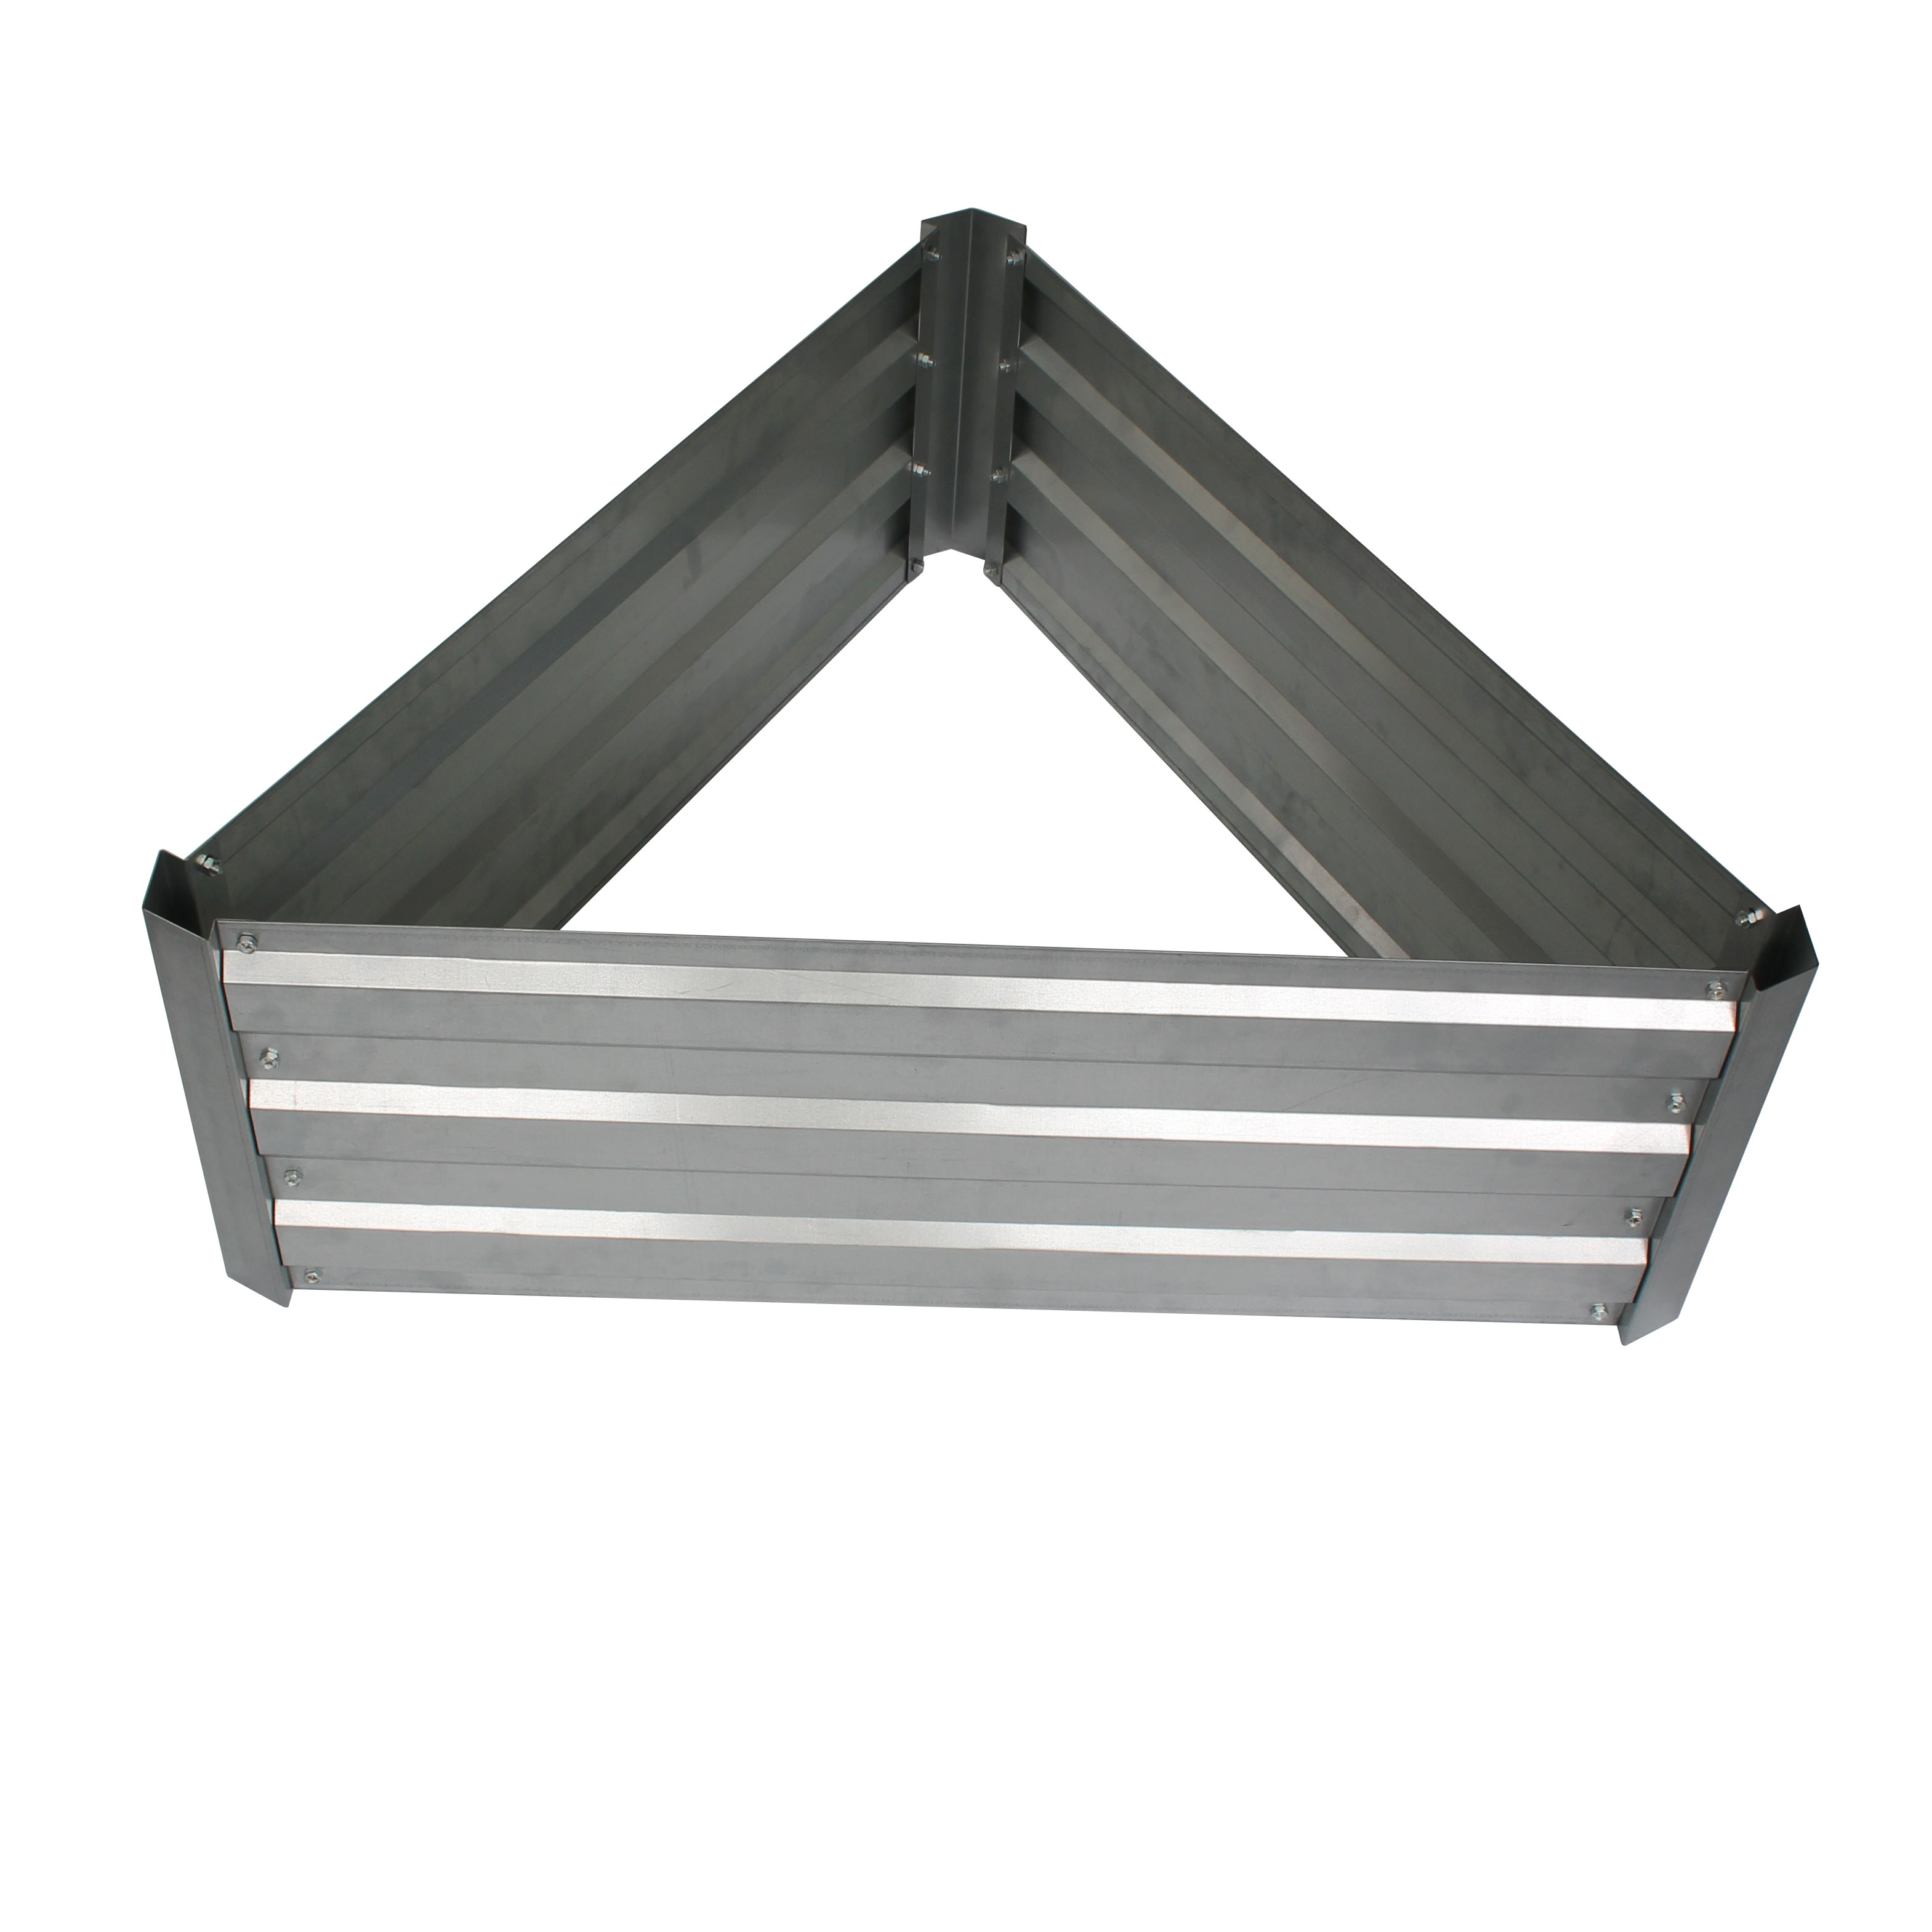 Galvanized steel earthmark raised garden beds